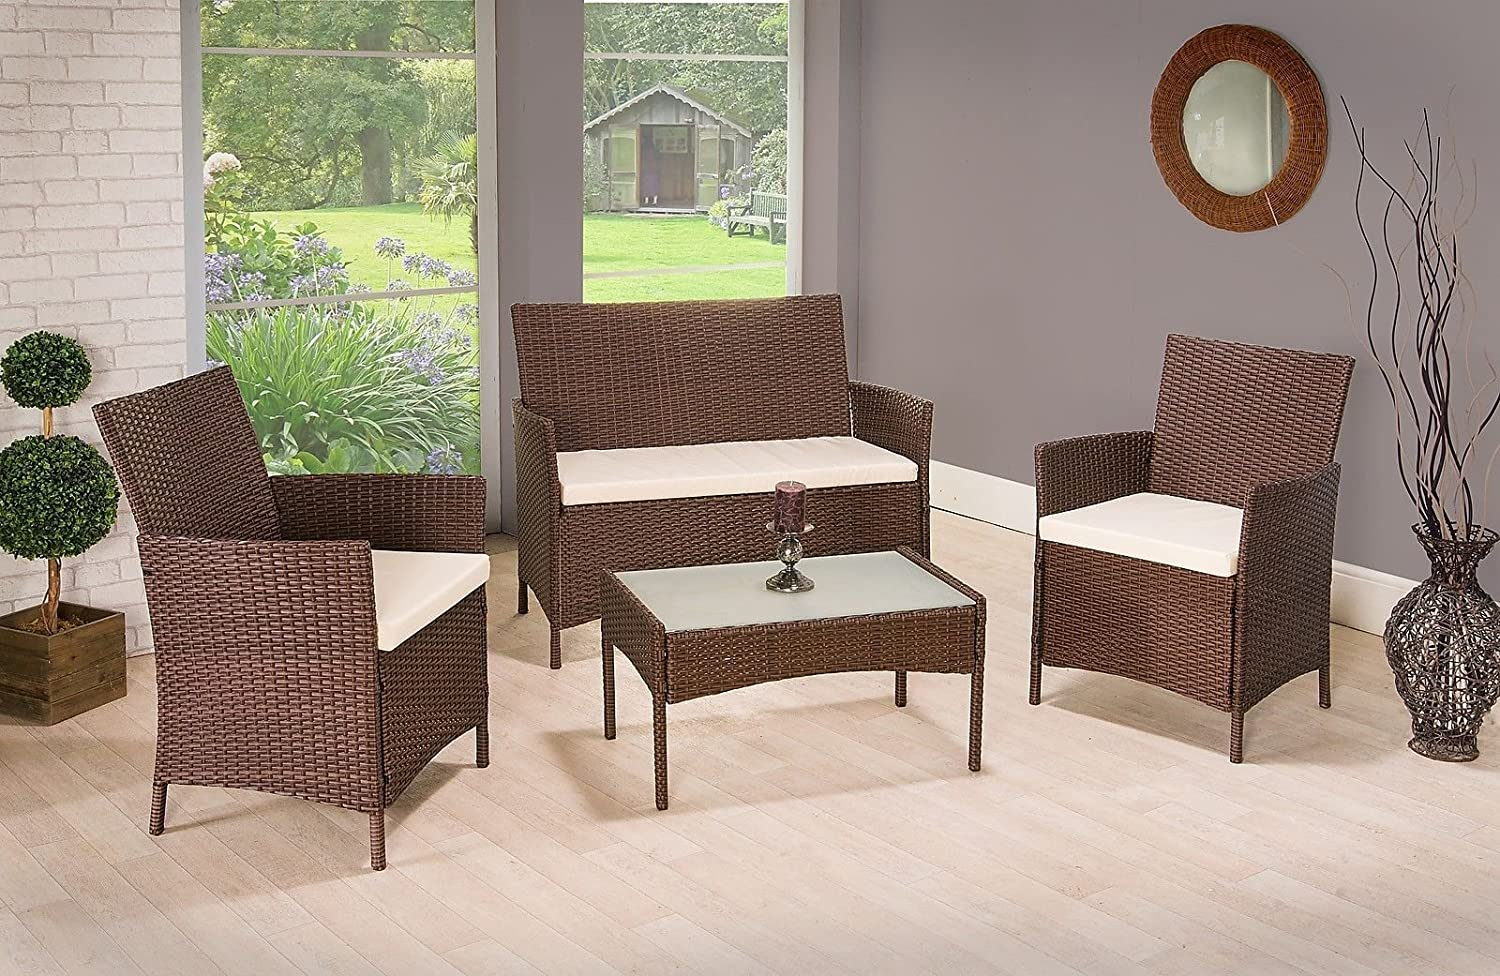 4 Pieces 4 SEATER RATTAN GARDEN FURNITURE SET 2 CHAIRS 1 SOFA 1 TABLE  OUTDOOR PATIO CONSERVATORY: Amazon.co.uk: Kitchen U0026 Home